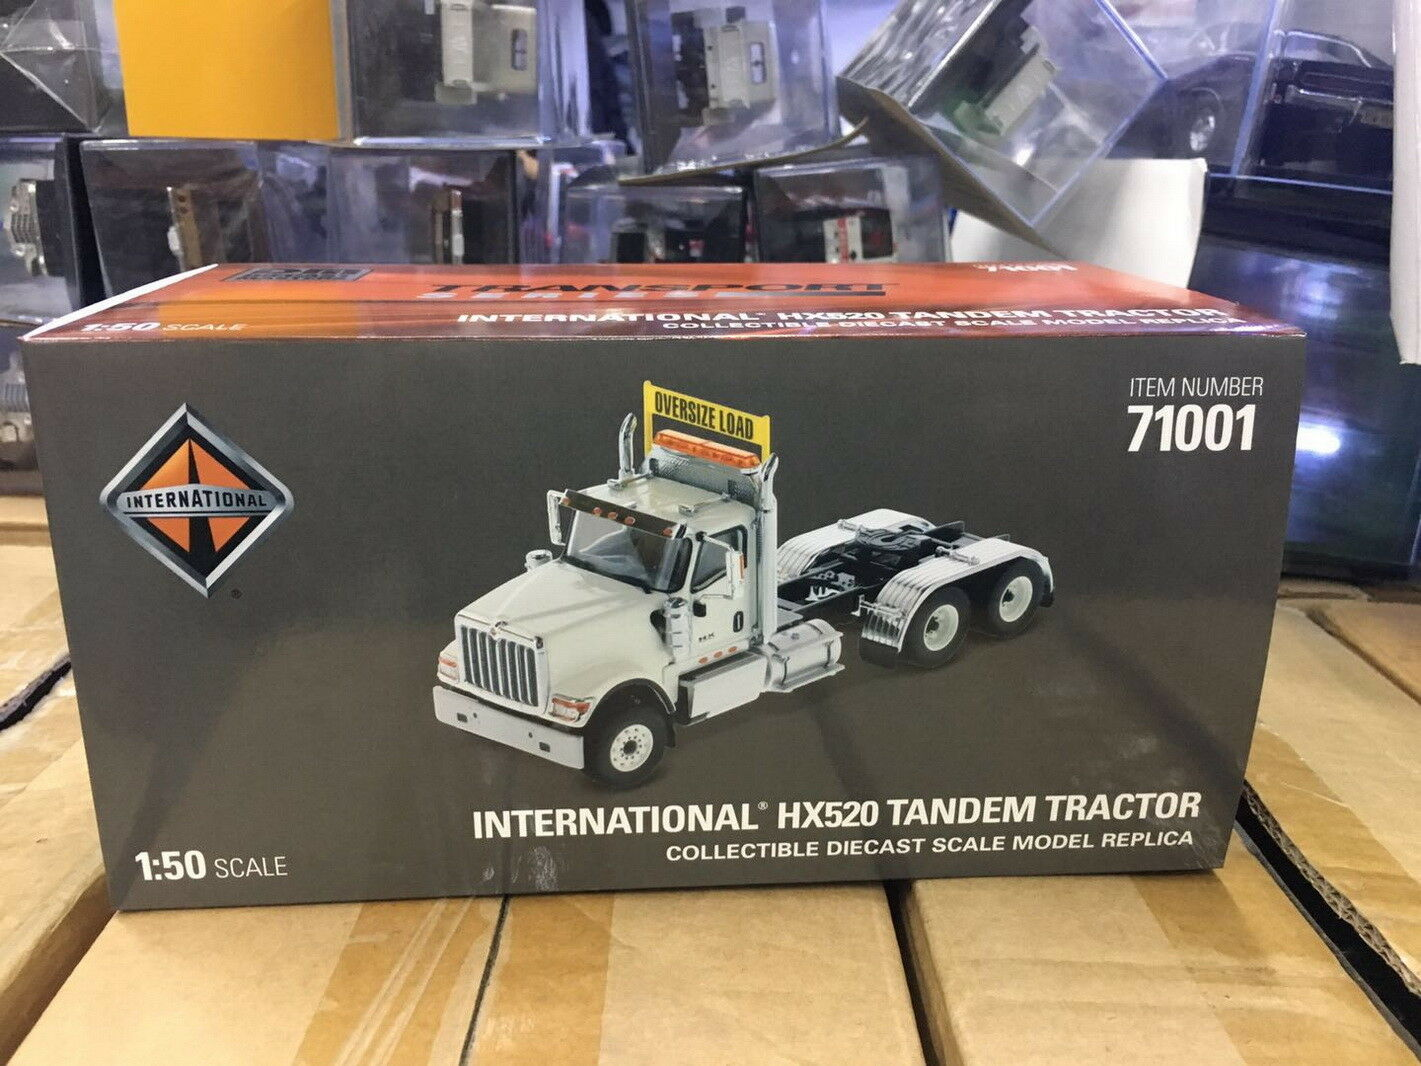 1 50 Scale International HX520 Tandem Tractor Tractor Tractor WHITE Diecast Masters DM71001 ee1281